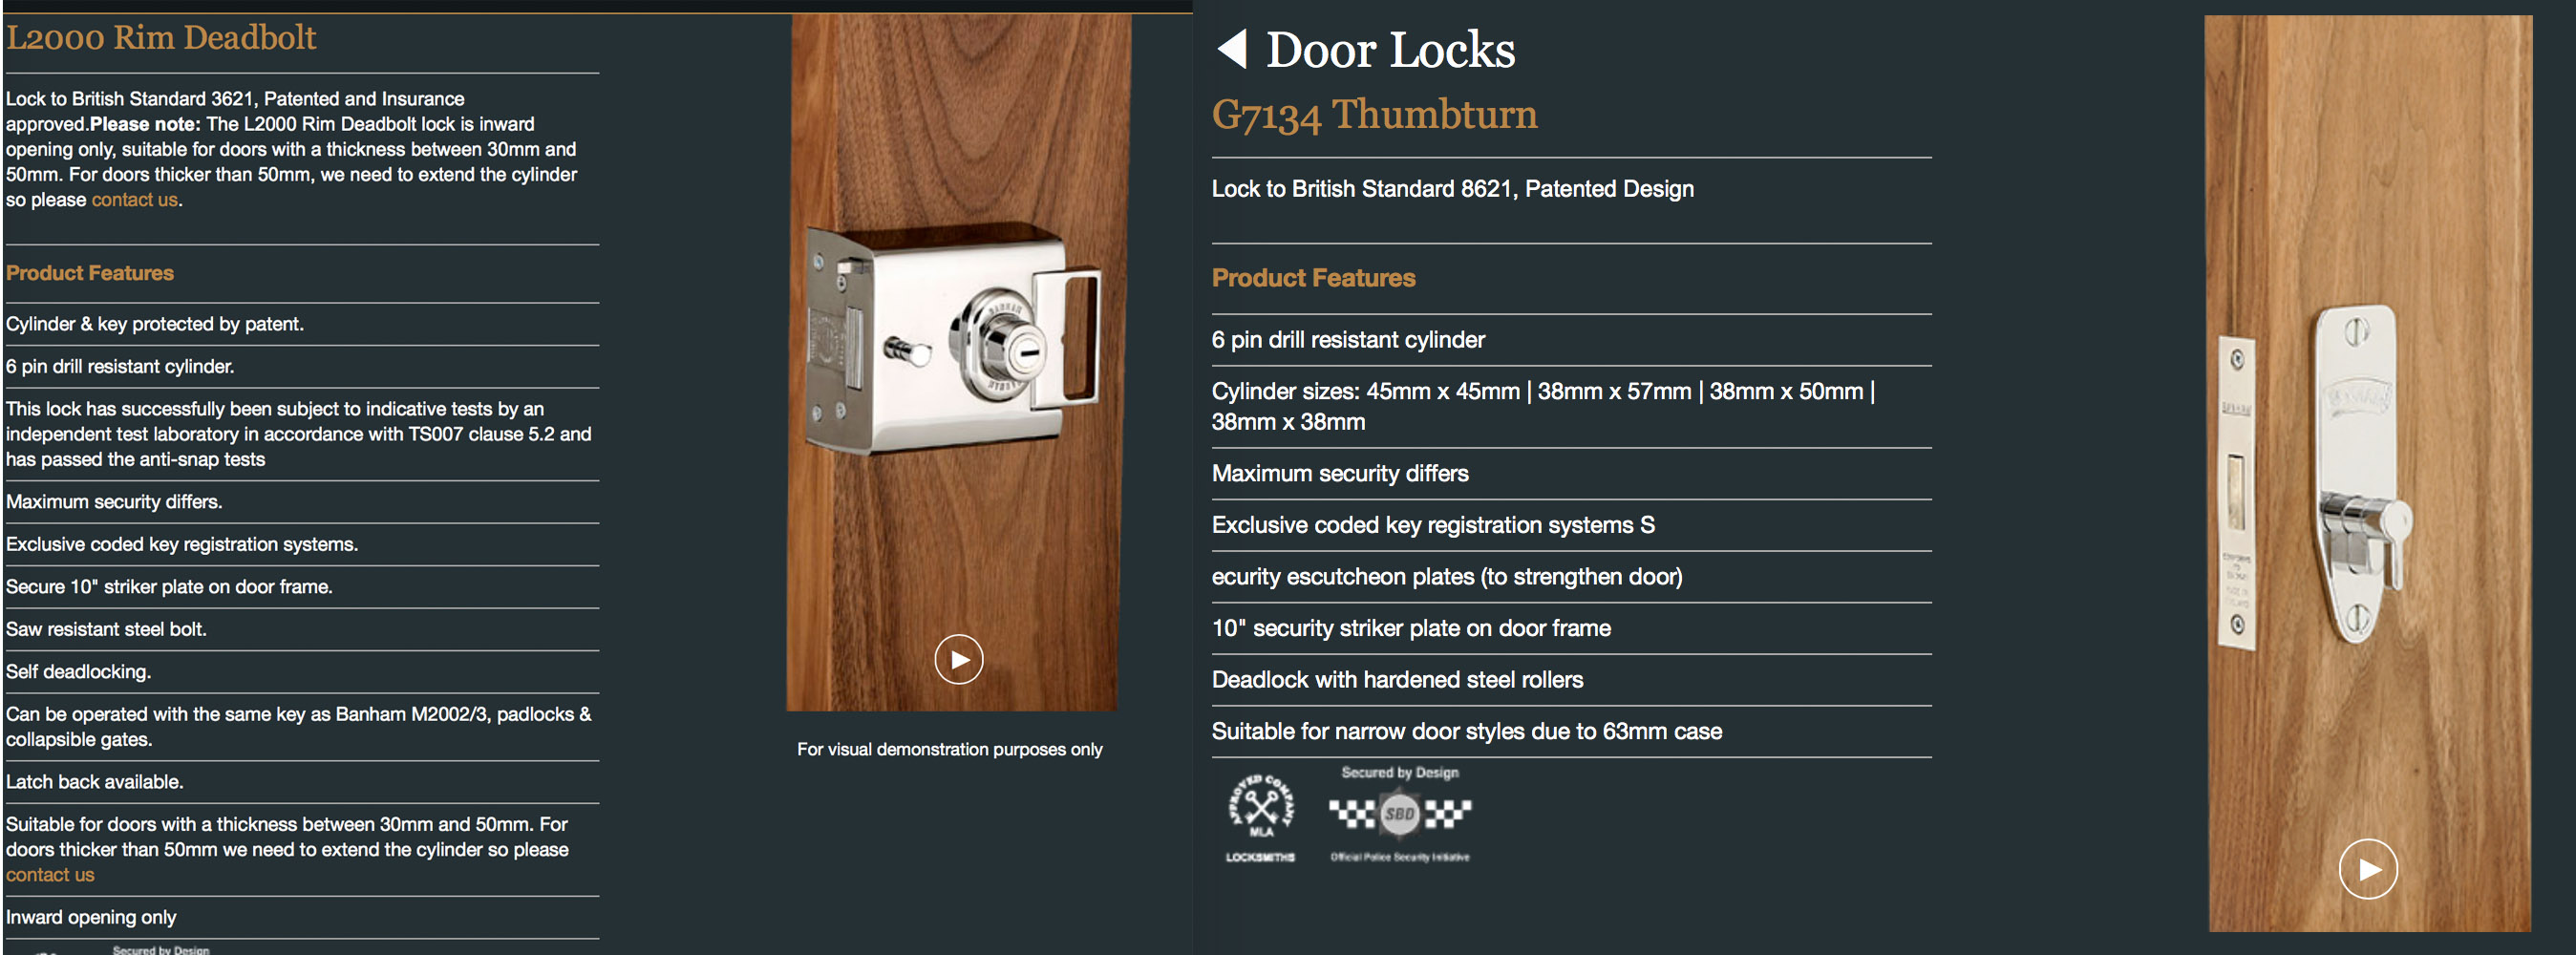 The easy way to unlock your front door from the inside build mum the latch handle is large and easy to grip it can be pulled forward with a flattened hand i was delighted with the deadlock mechanism its designed so rubansaba